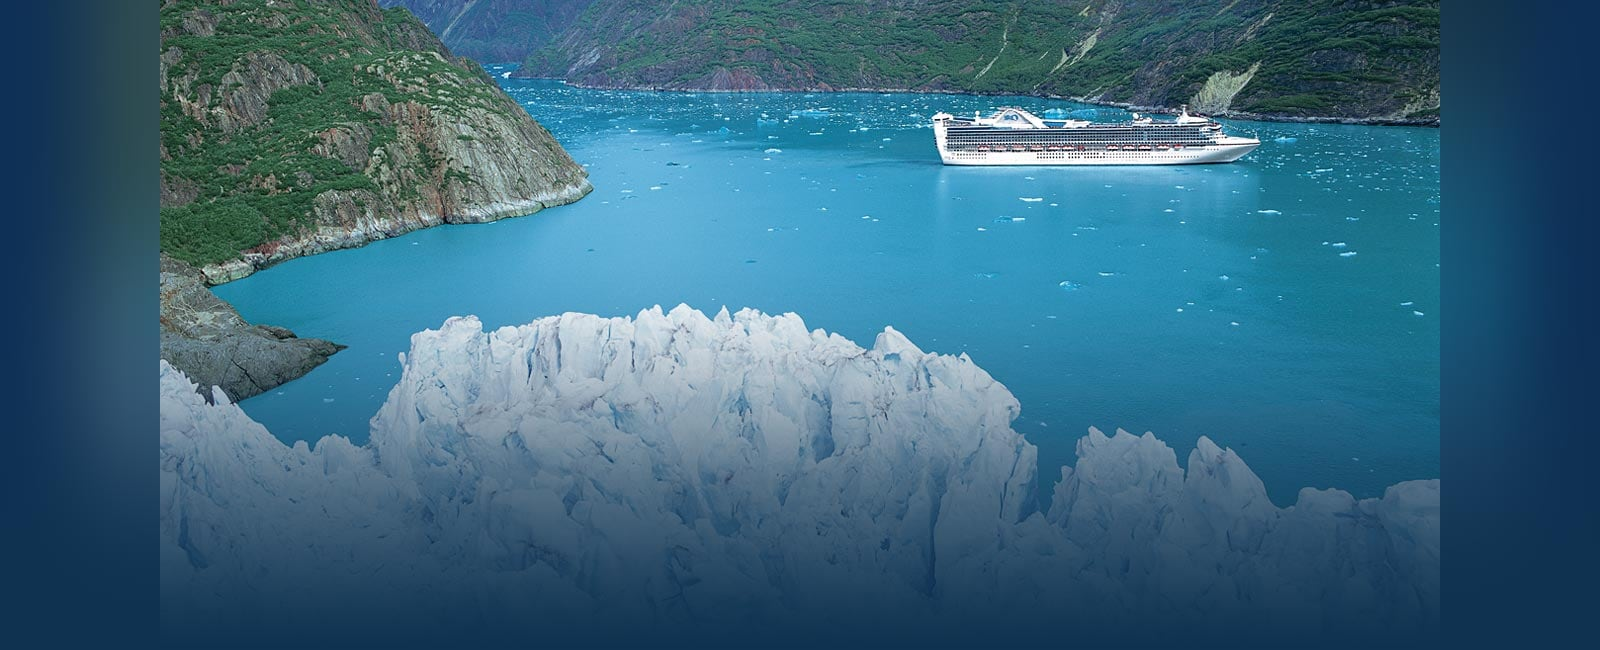 Alaska Cruise – Princess Cruises